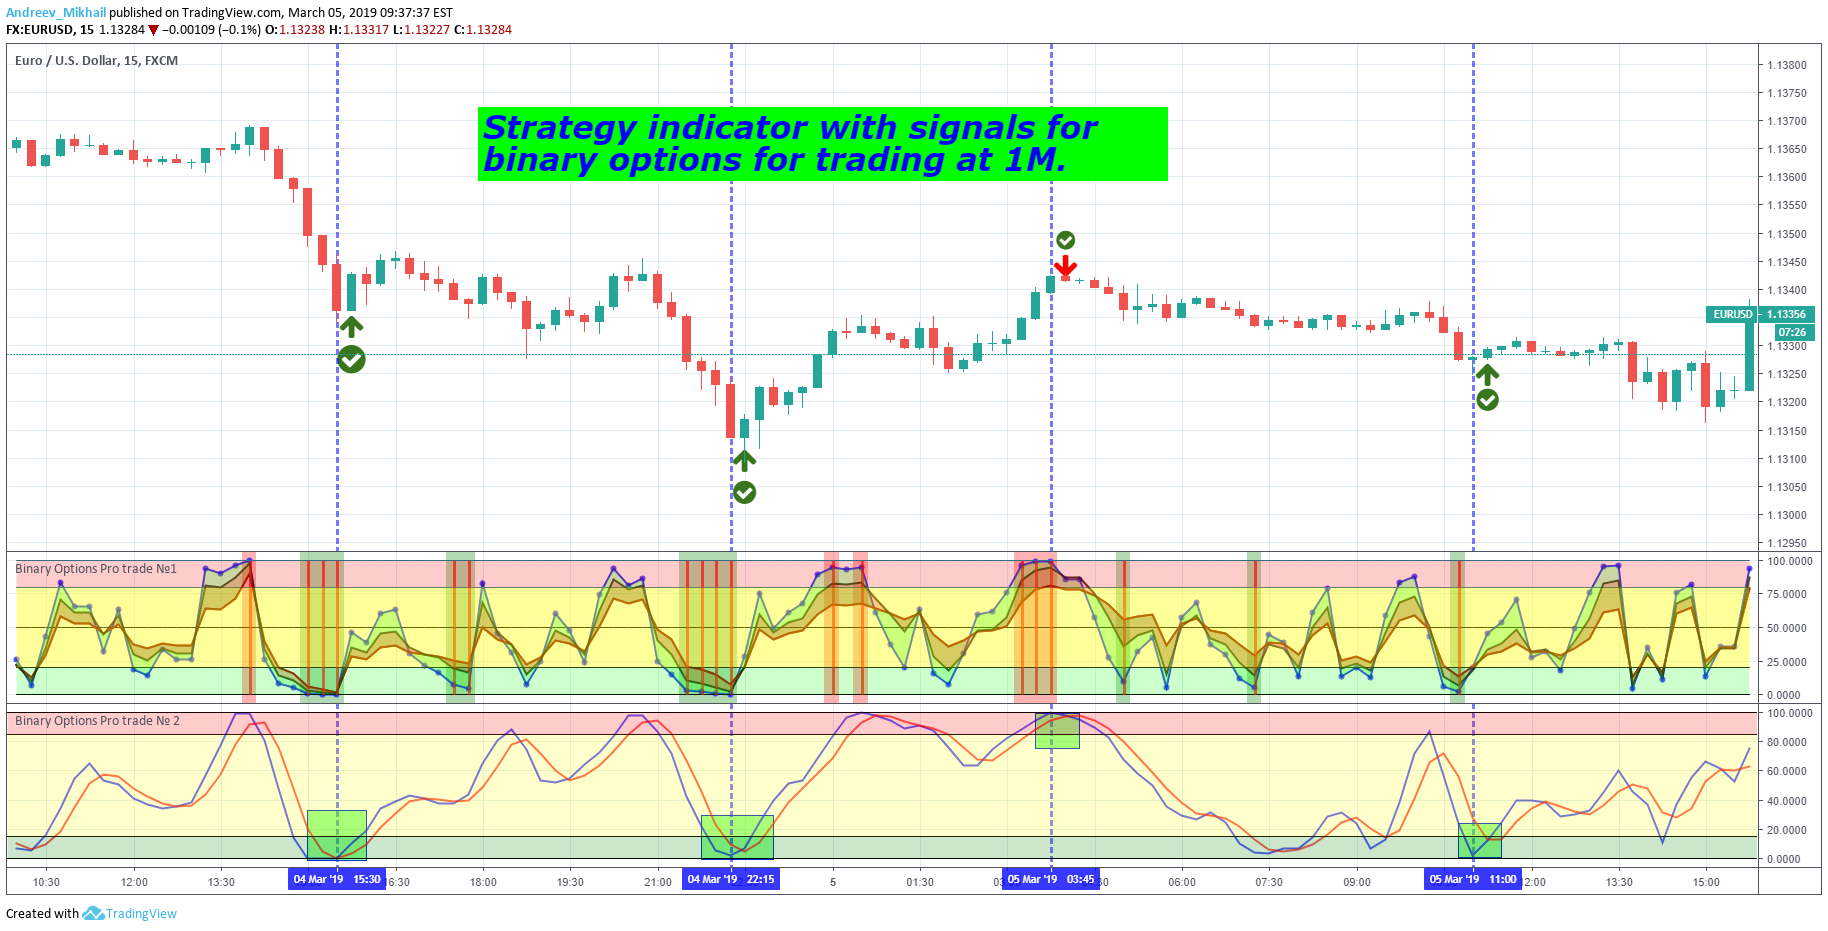 Indicator strategy with signals for binary options trading for FX